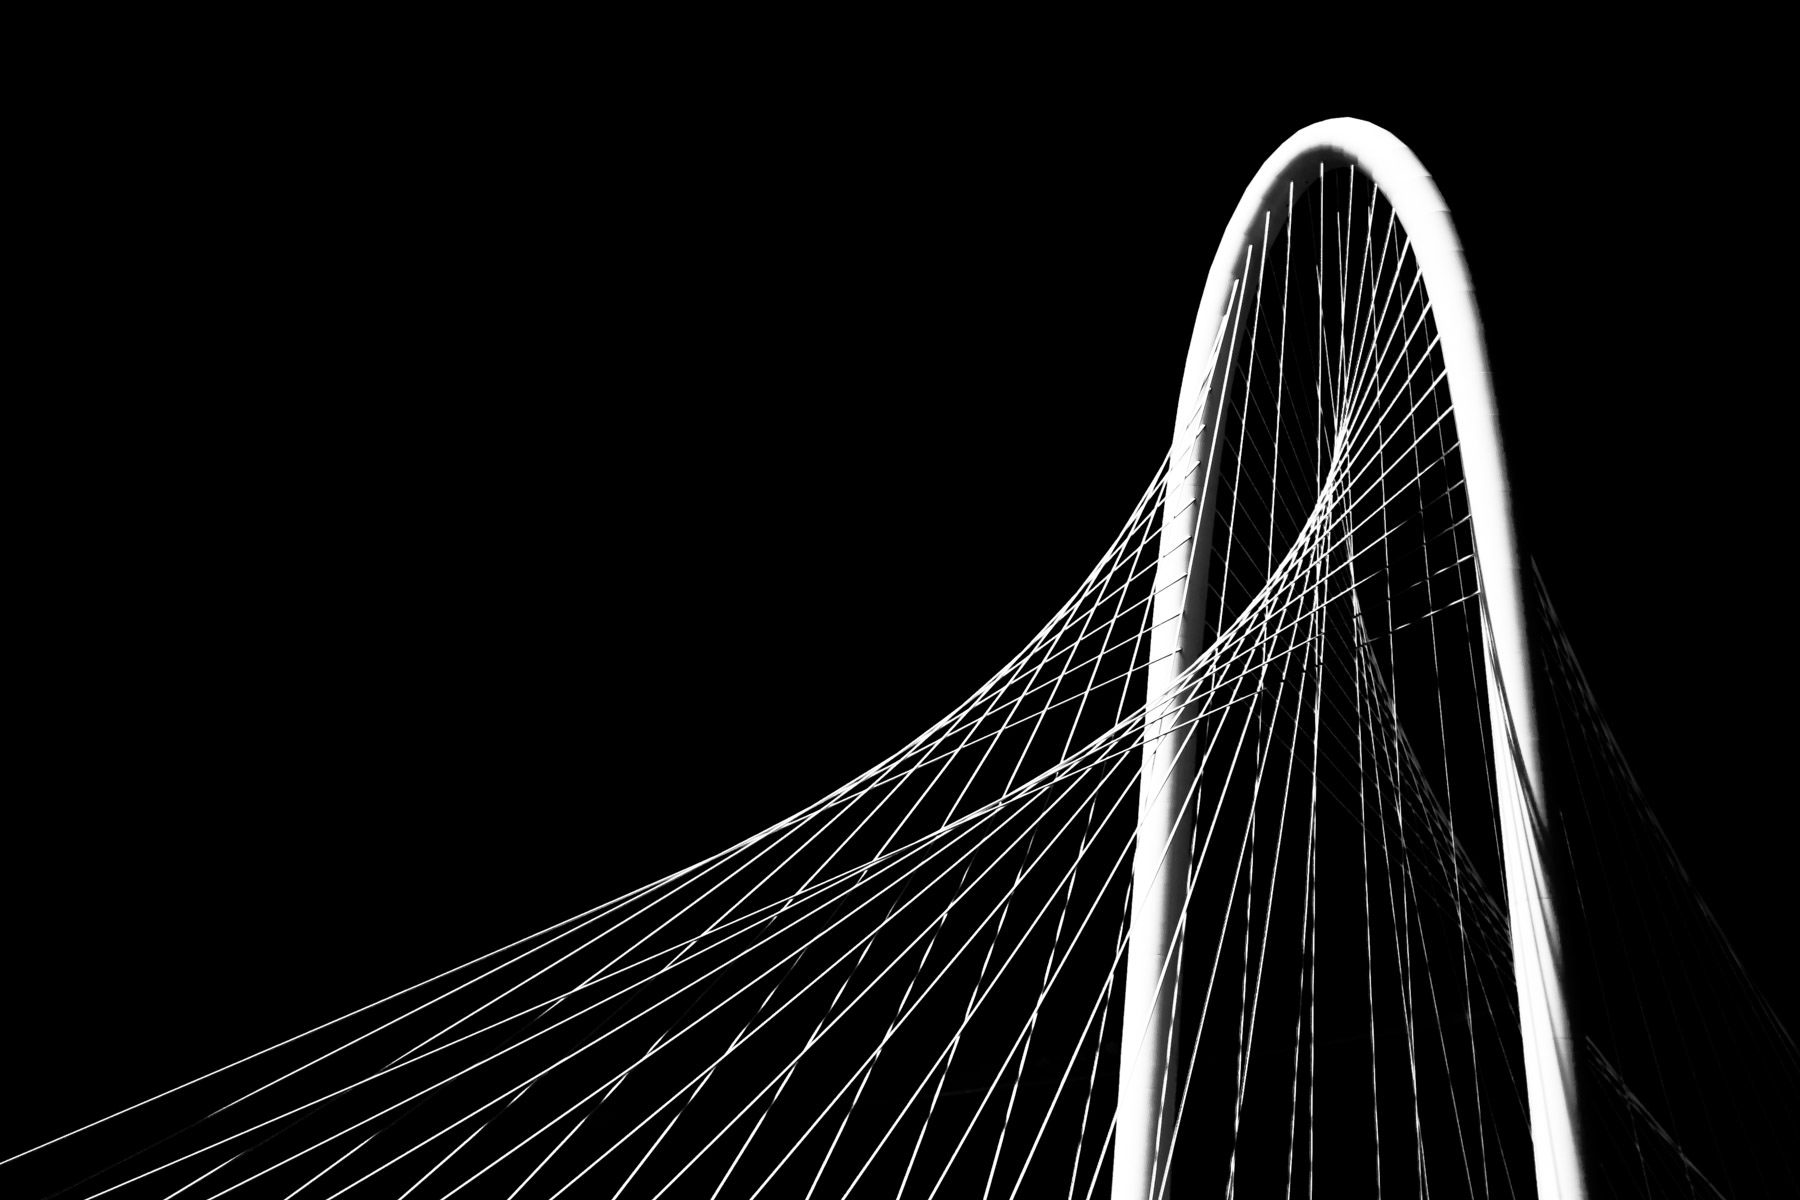 Detail of the main arch and suspension cables of Santiago Calatrava's Margaret Hunt Hill Bridge, Dallas, Texas.